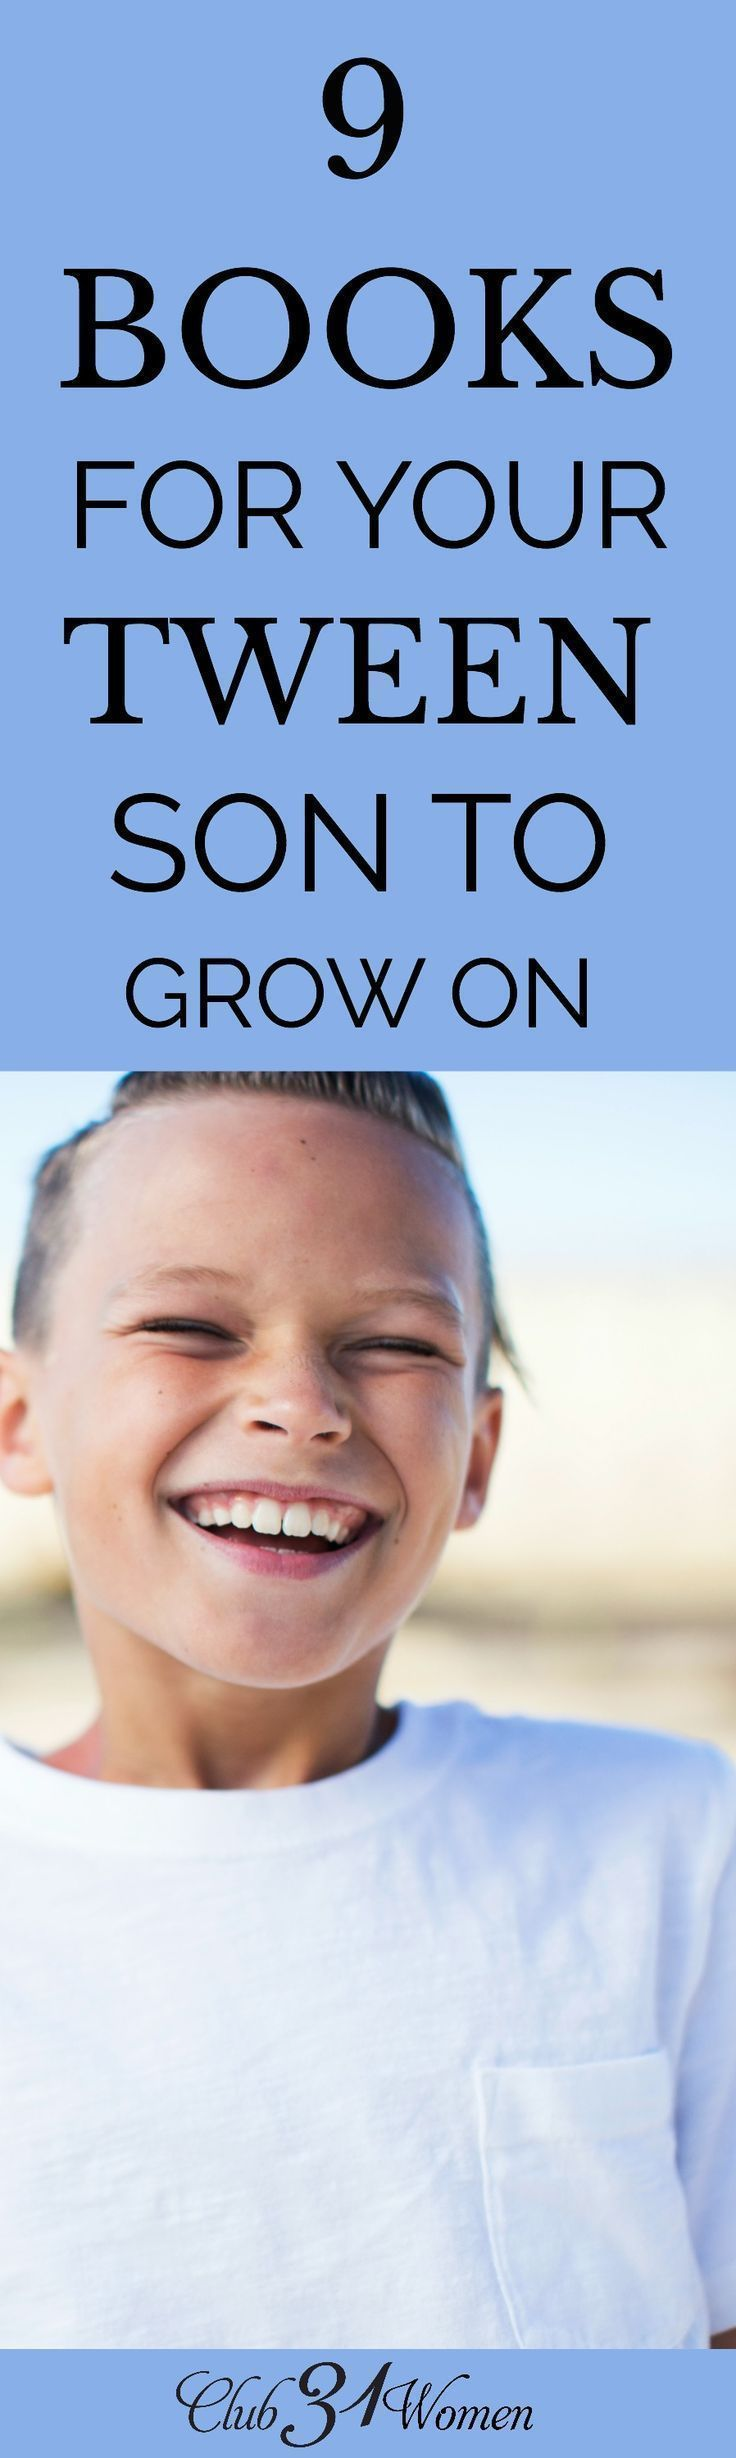 It can be so challenging to find excellent reading material for your tween boy. But here is a fabulous list of extraordinary books to get you started! via